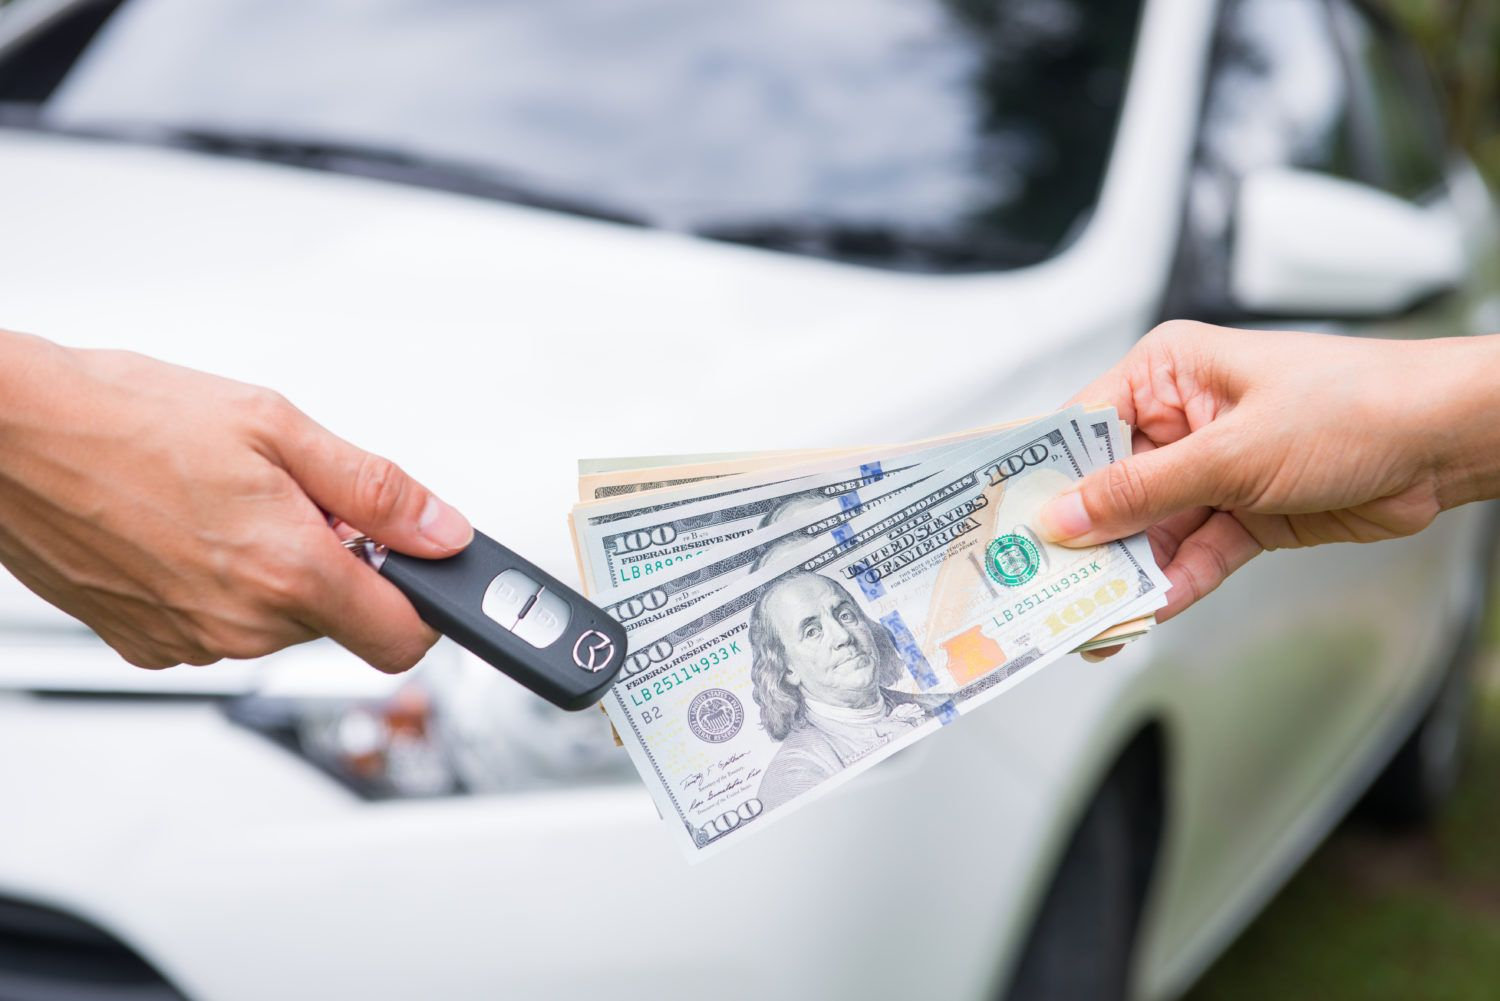 How to sell car and get highest price